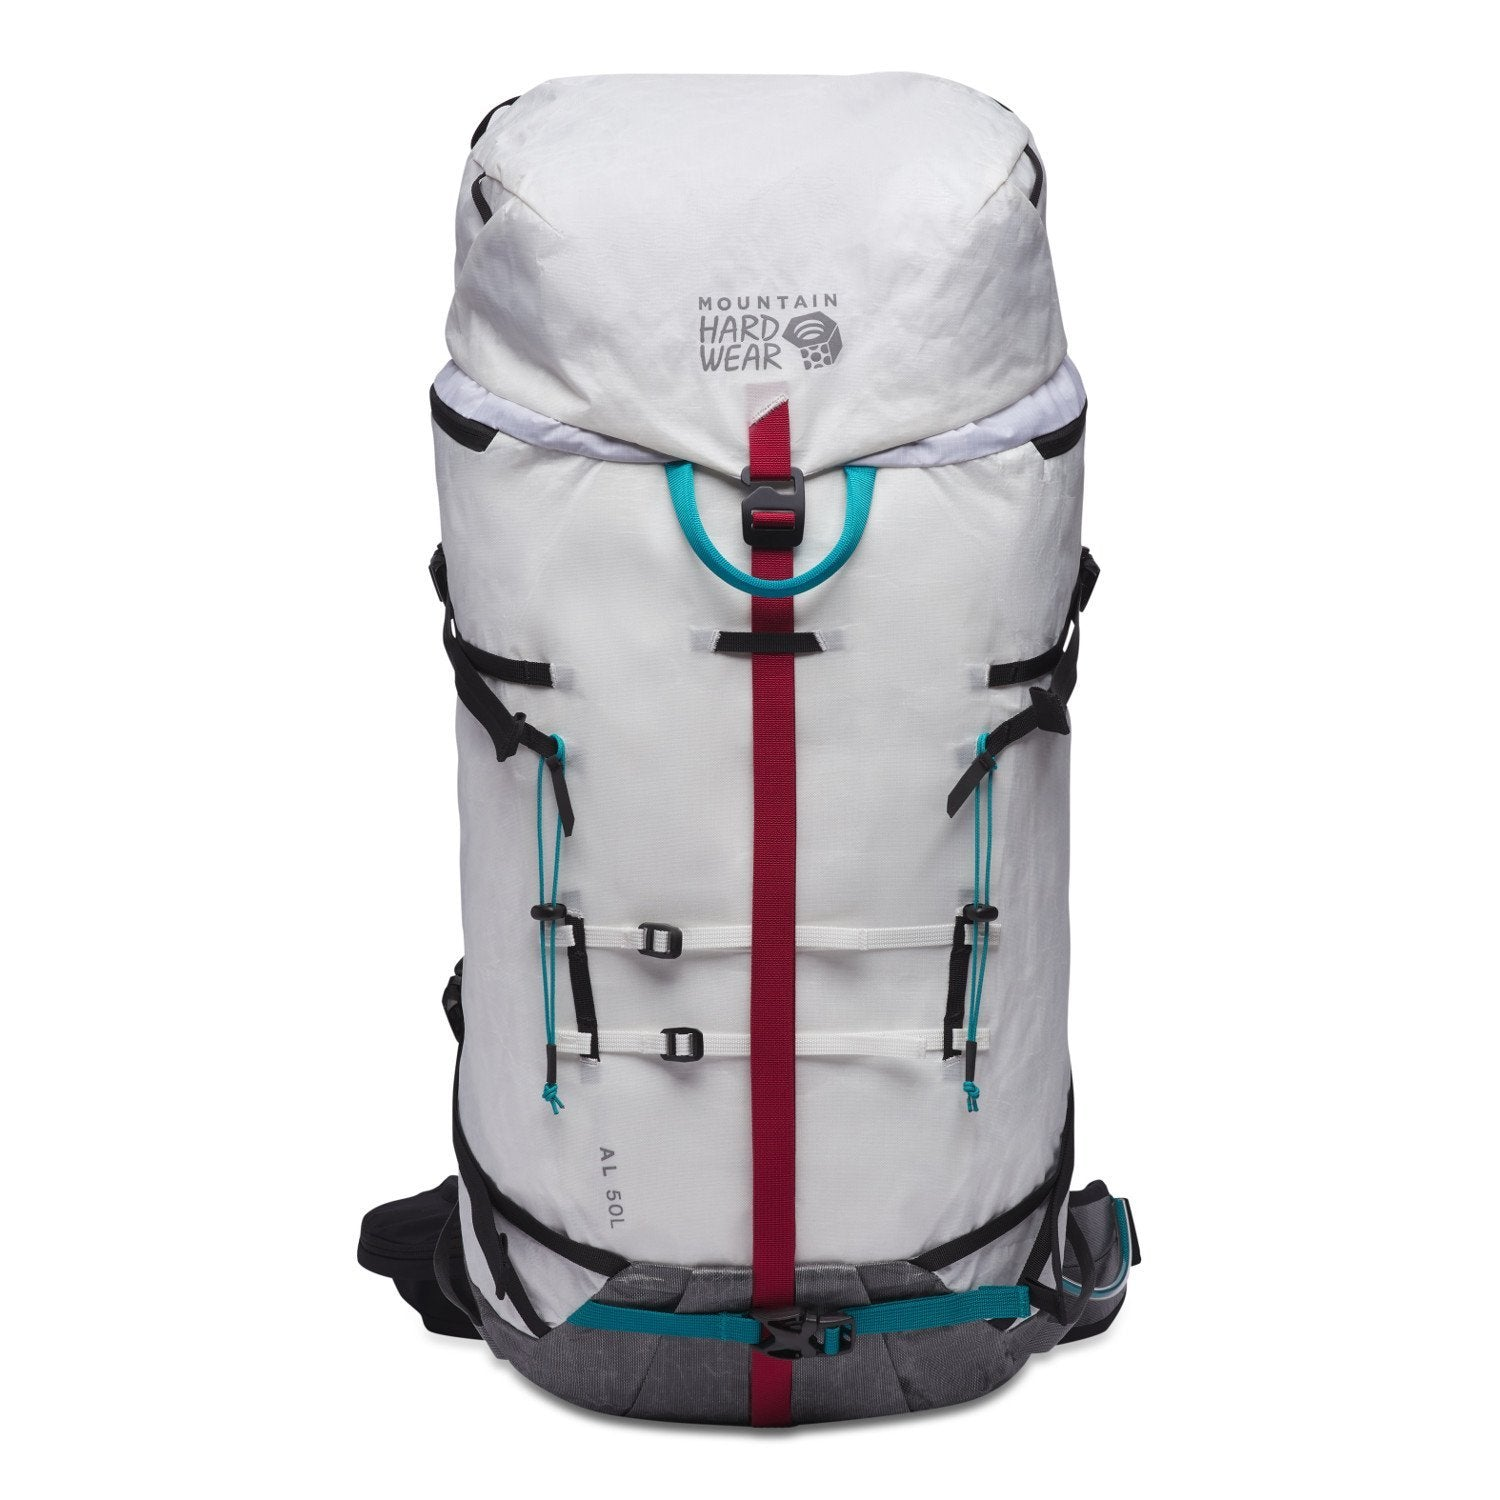 Mountain Hardwear Alpine Light 50 Front showing straps and haul loop